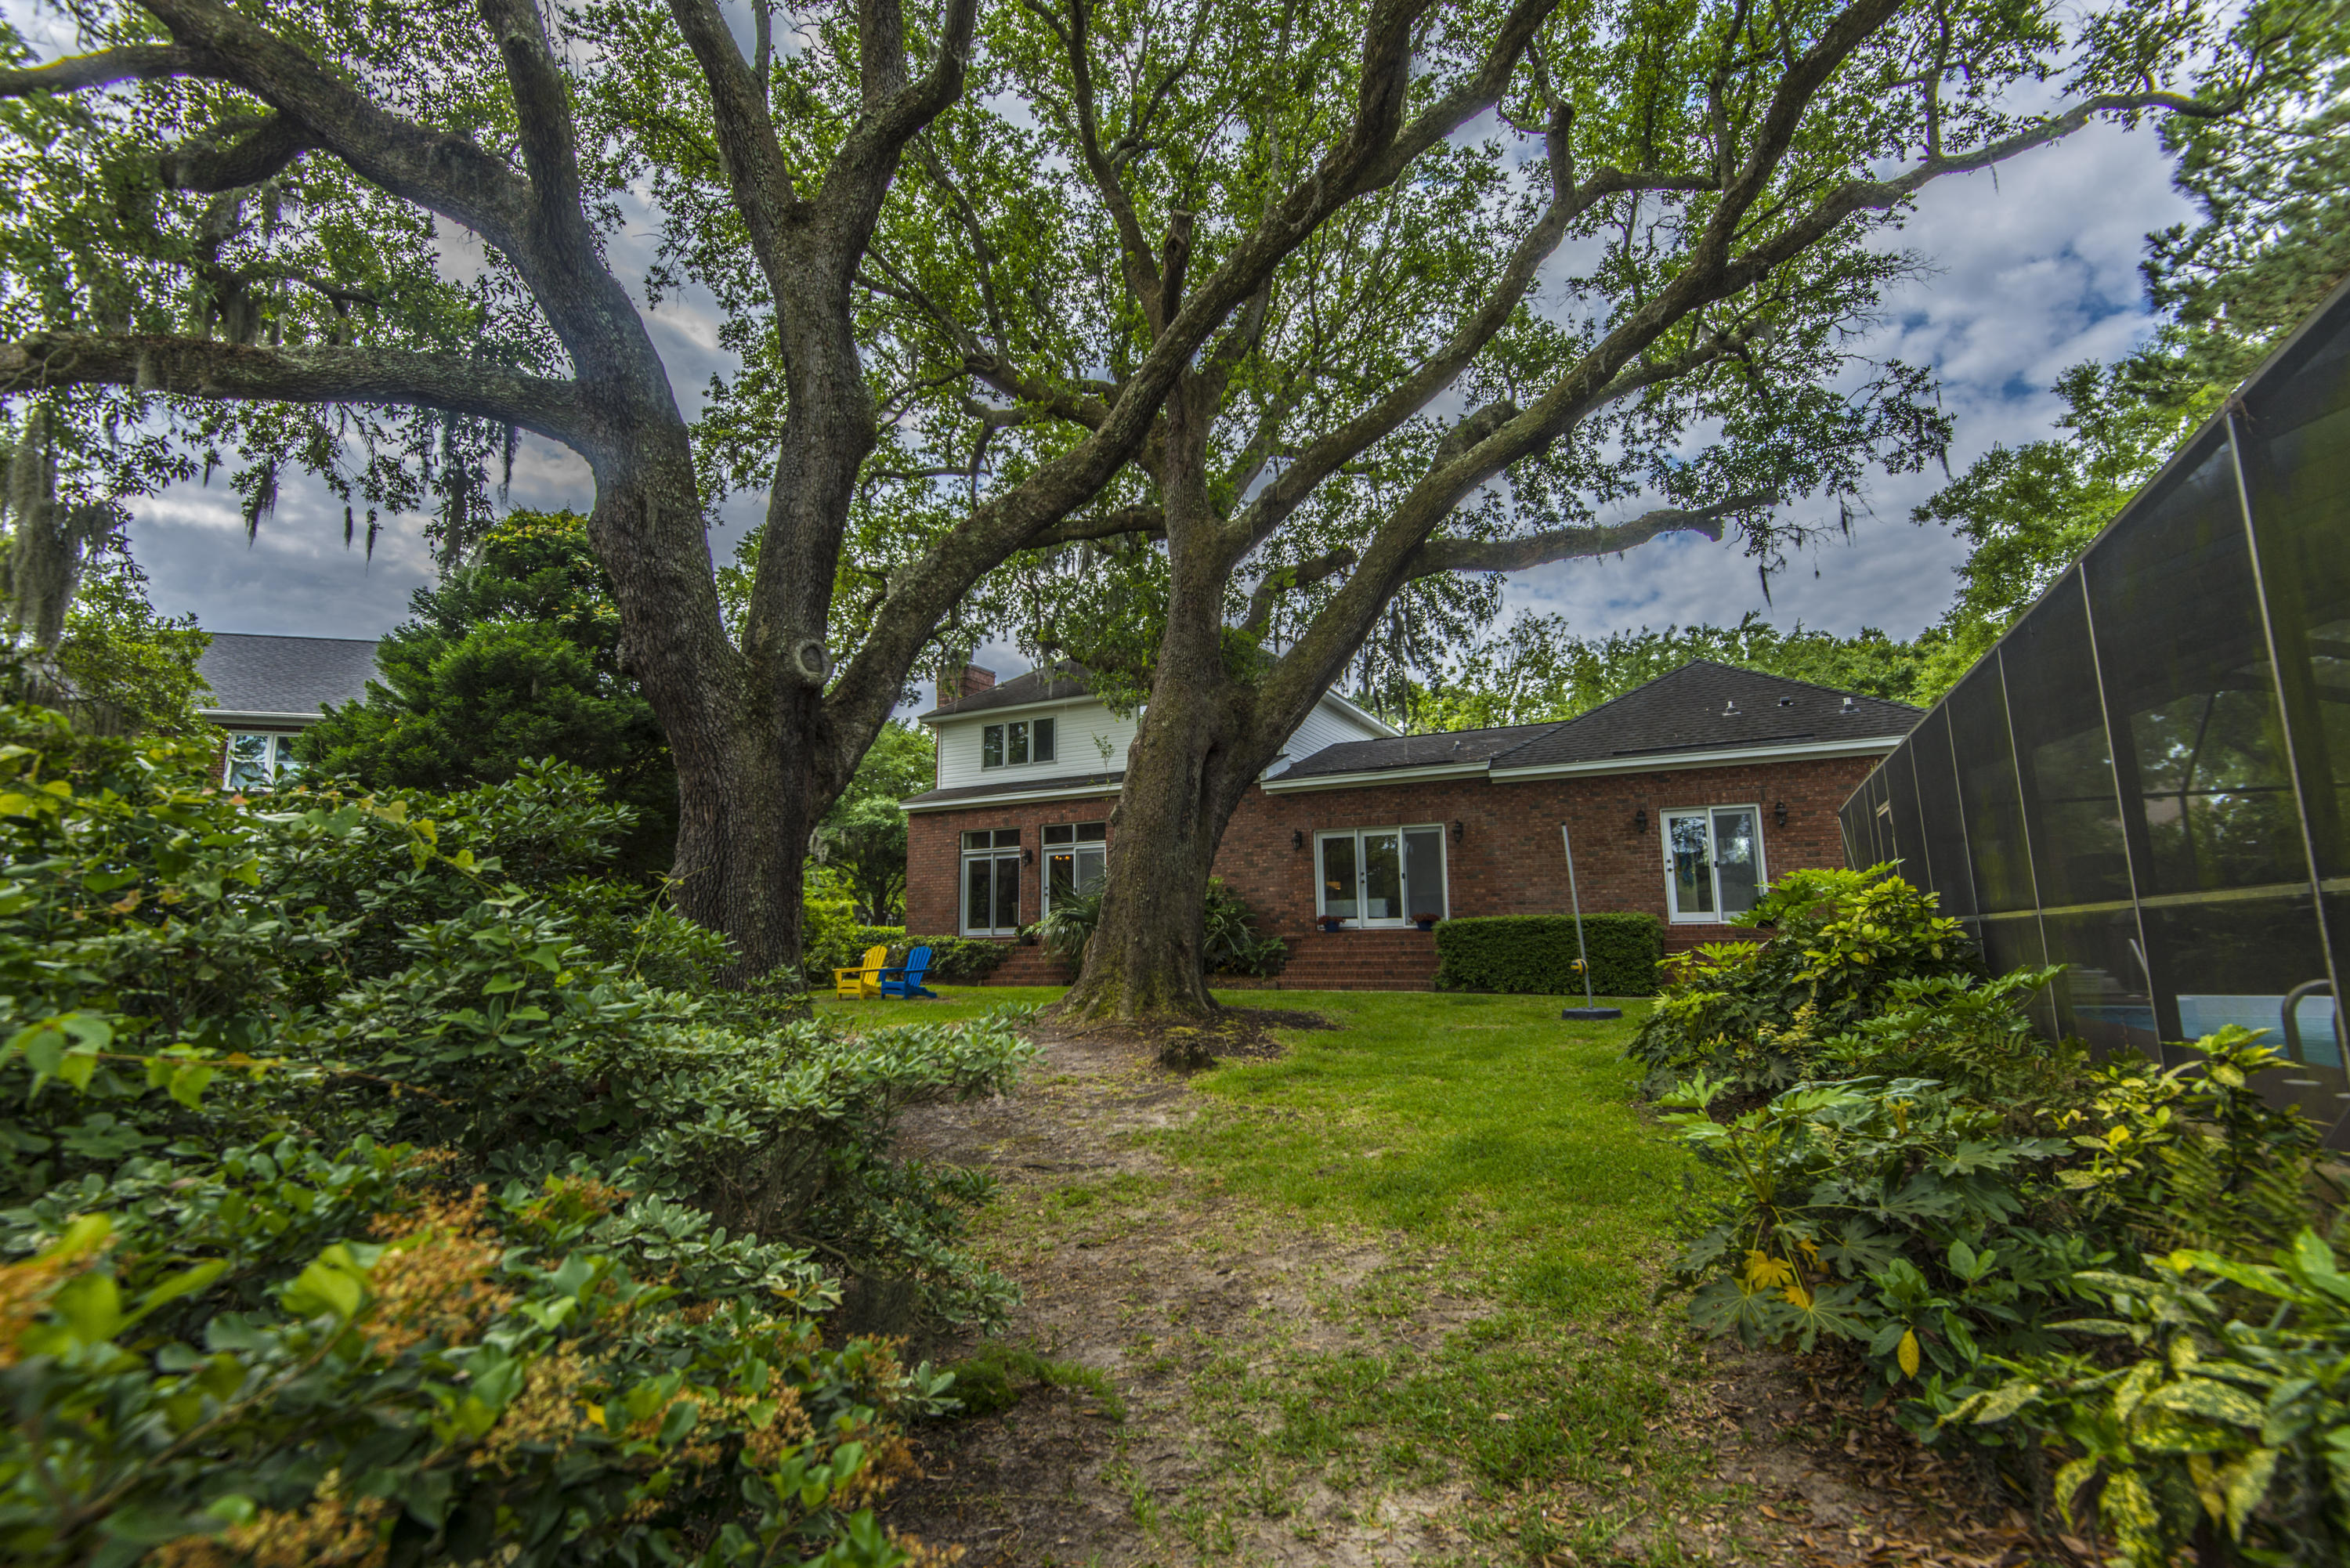 Stiles Point Plantation Homes For Sale - 921 Cotton House, Charleston, SC - 8